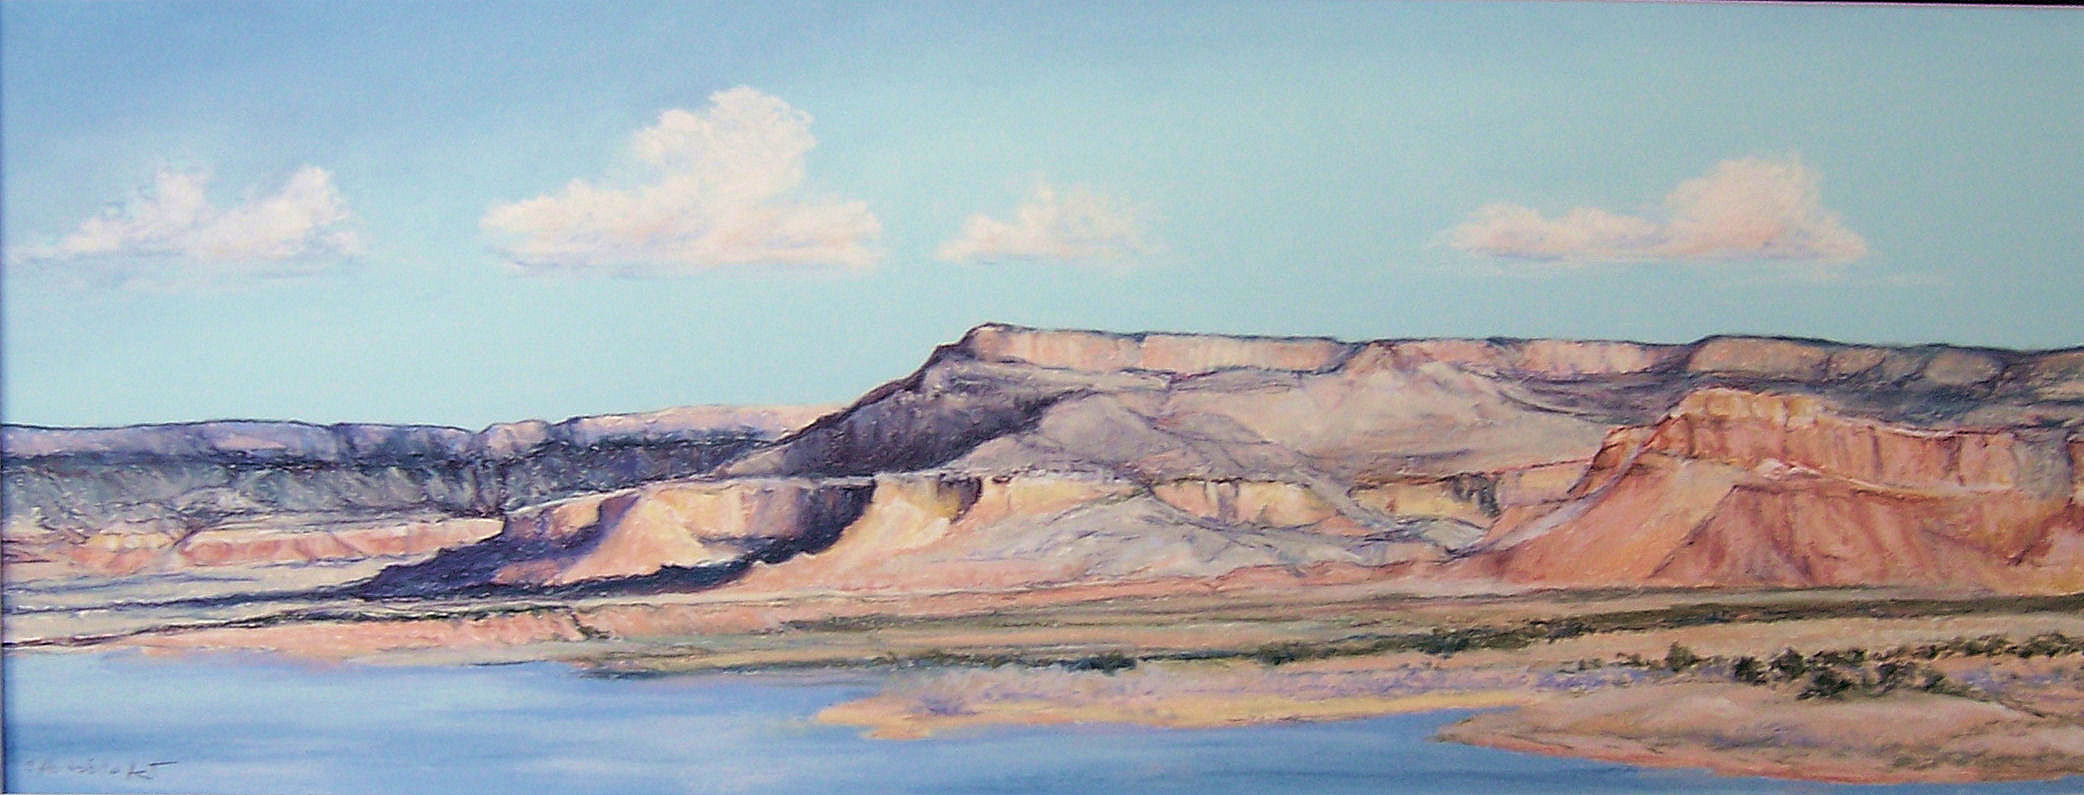 ghost-ranch-mesa-from-abiquiu-lake-9-x-24